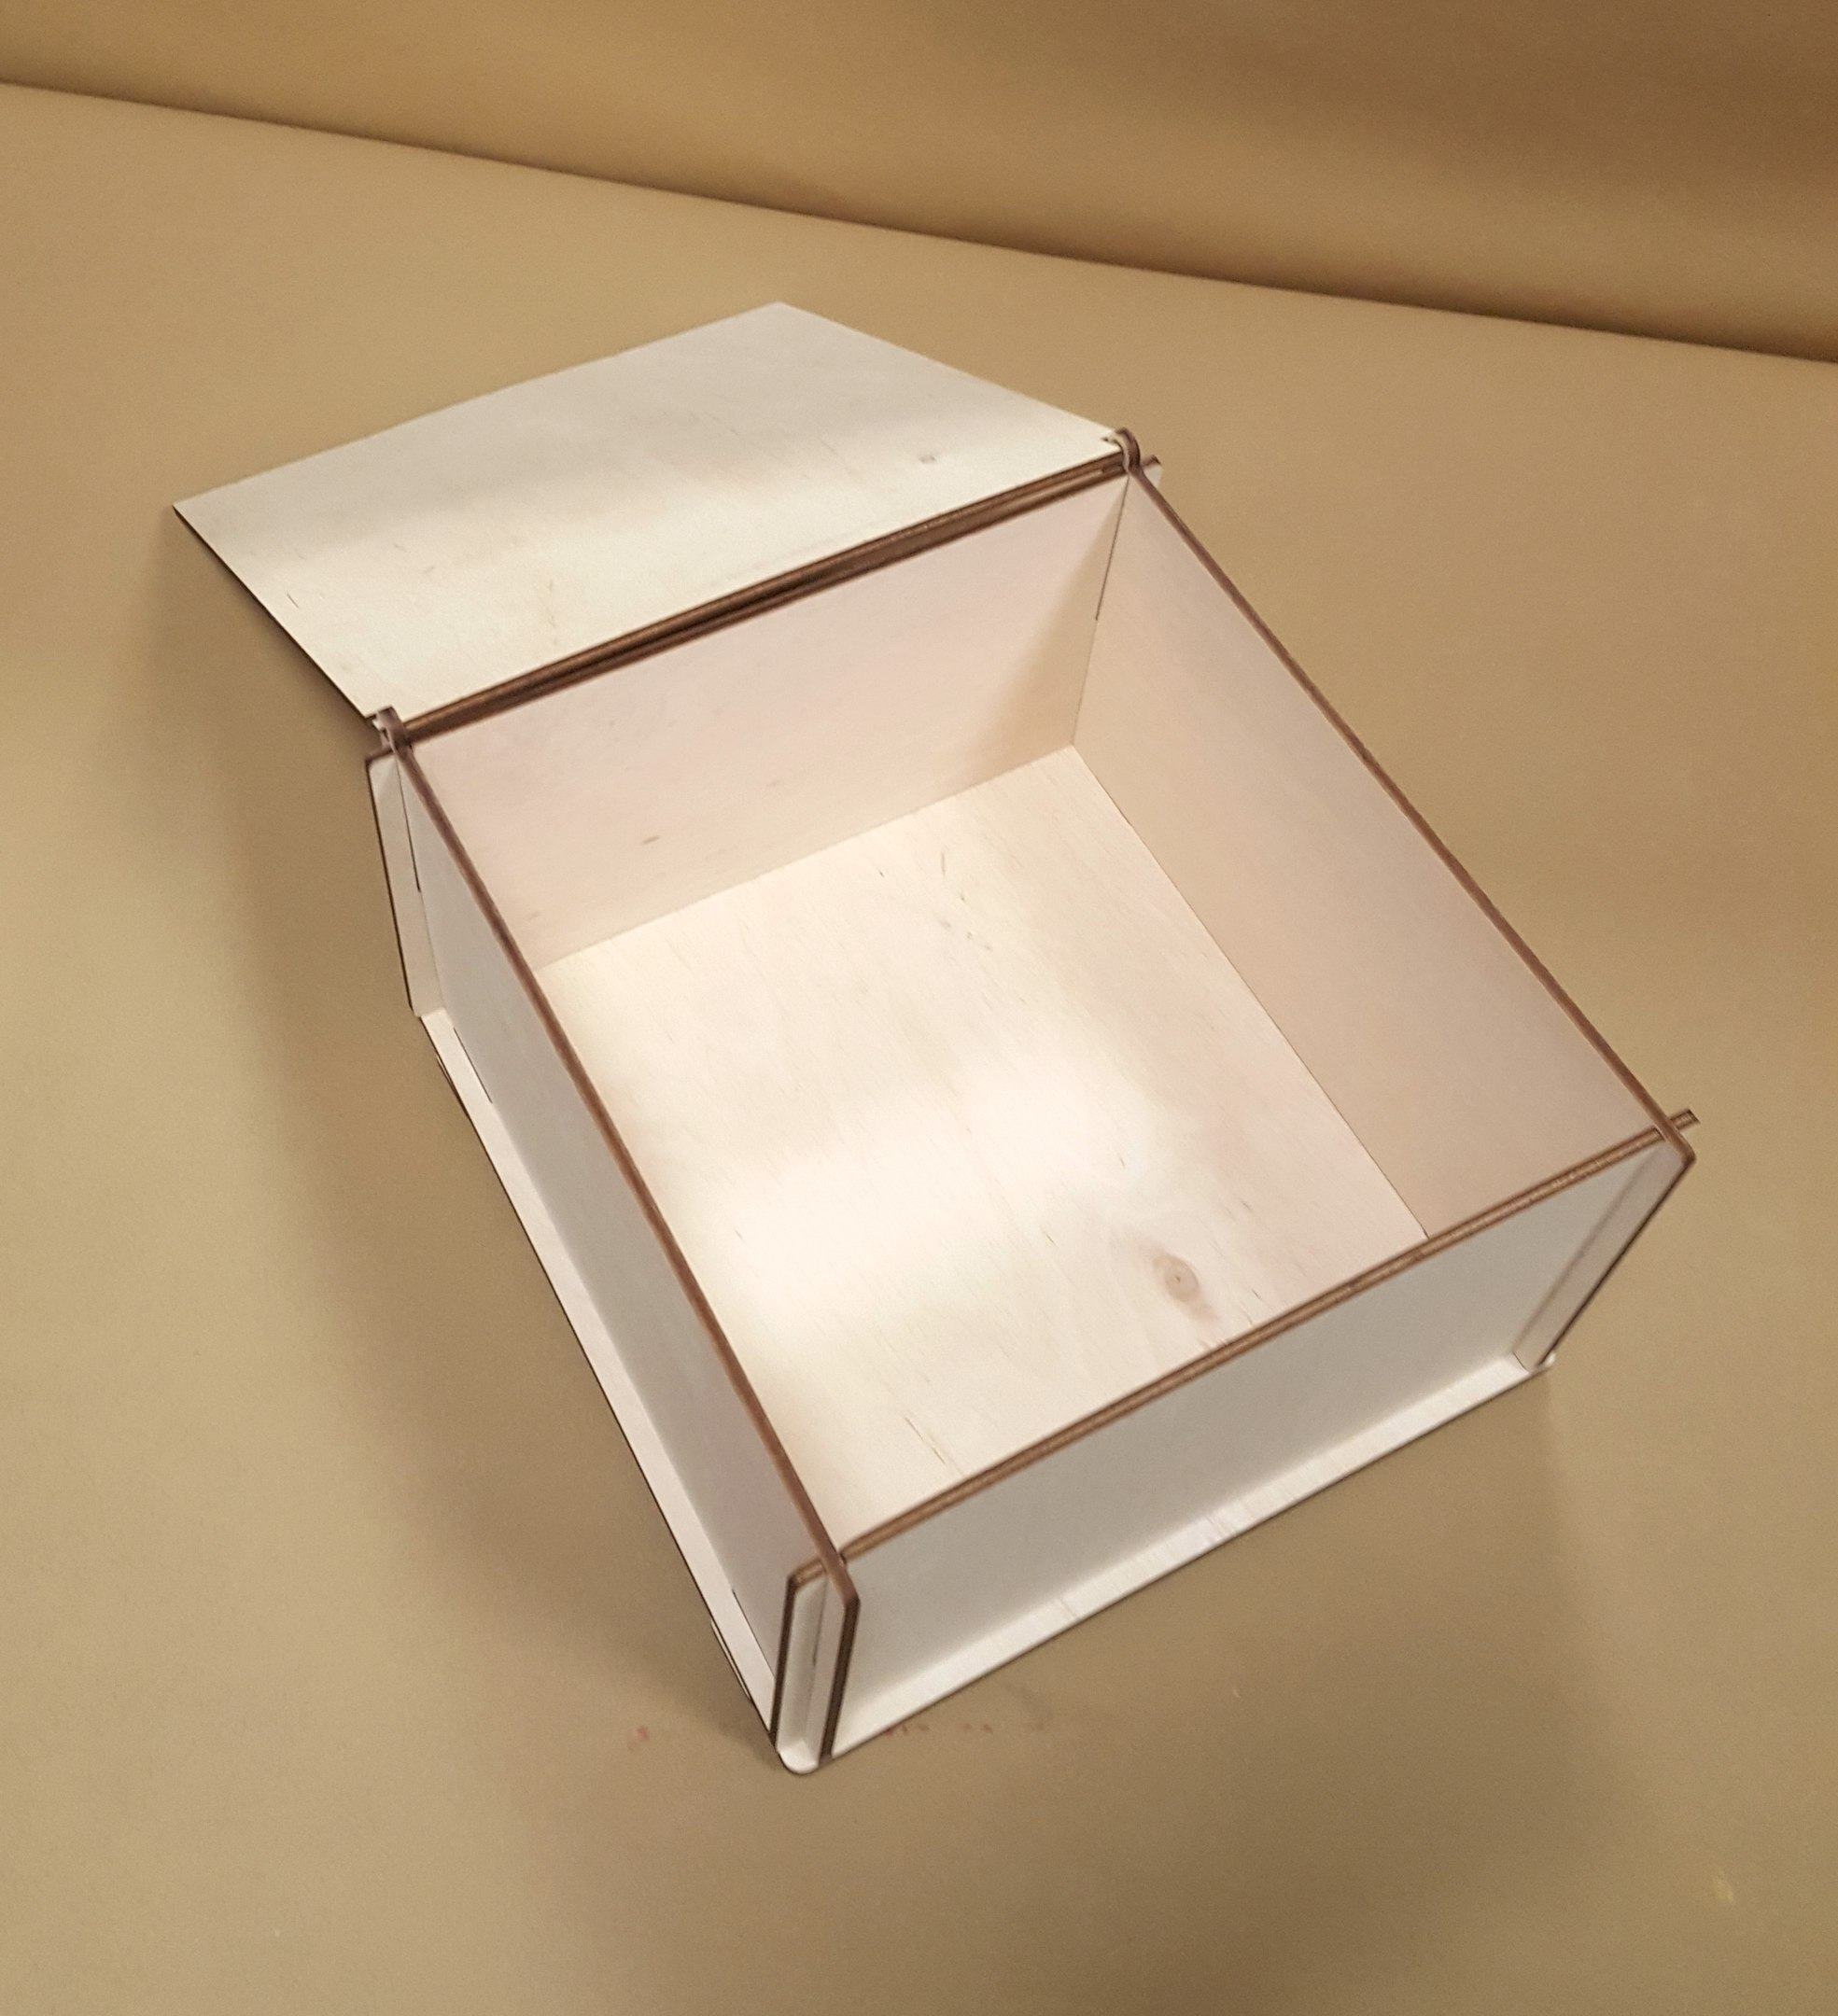 Laser Cut Wood Storage Box With Lid Free Vector